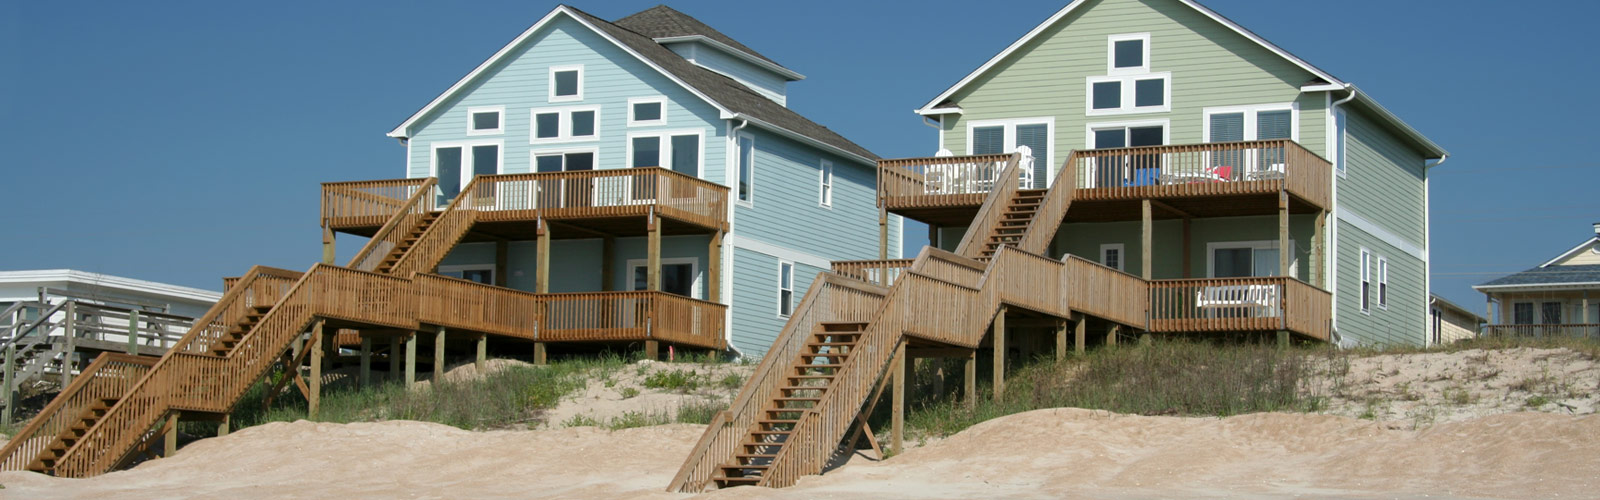 two large beach houses with wooden decks/stairs